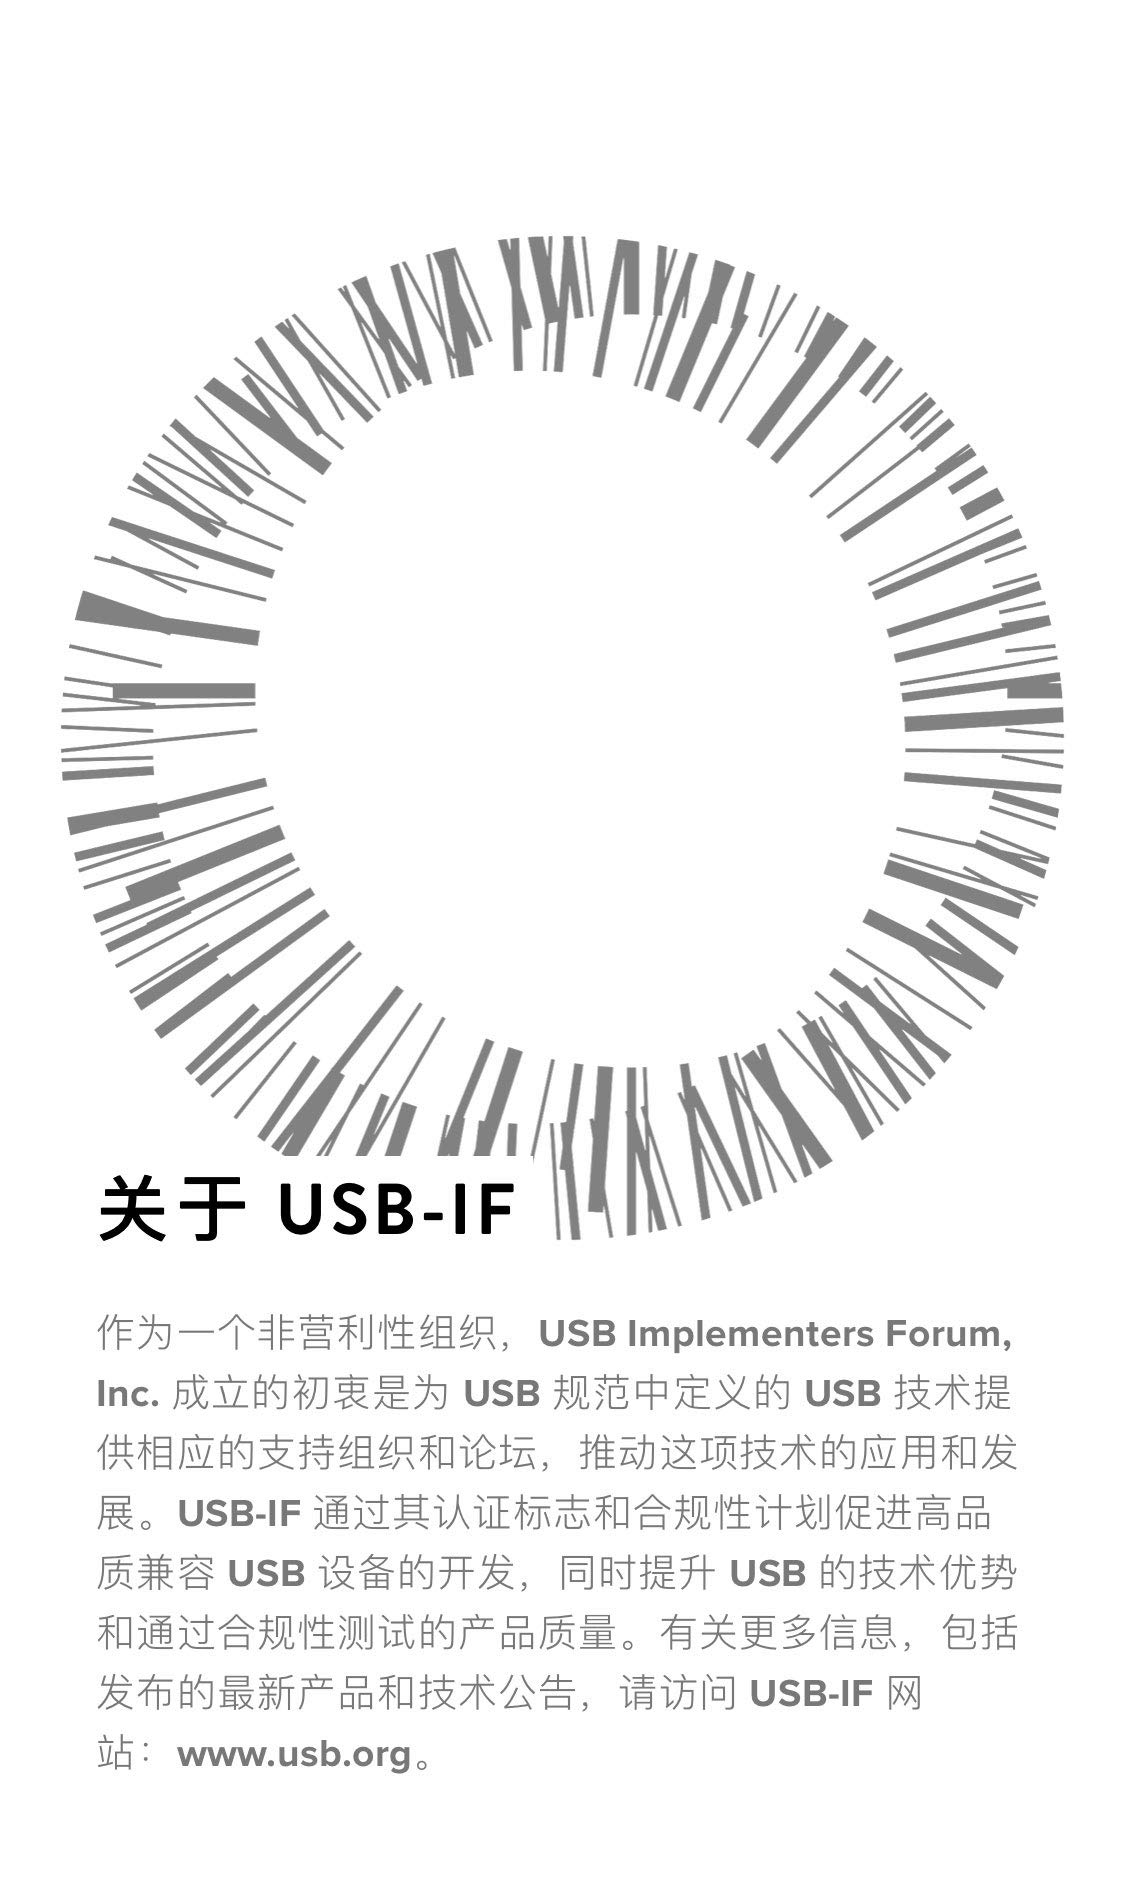 about-USB-IF